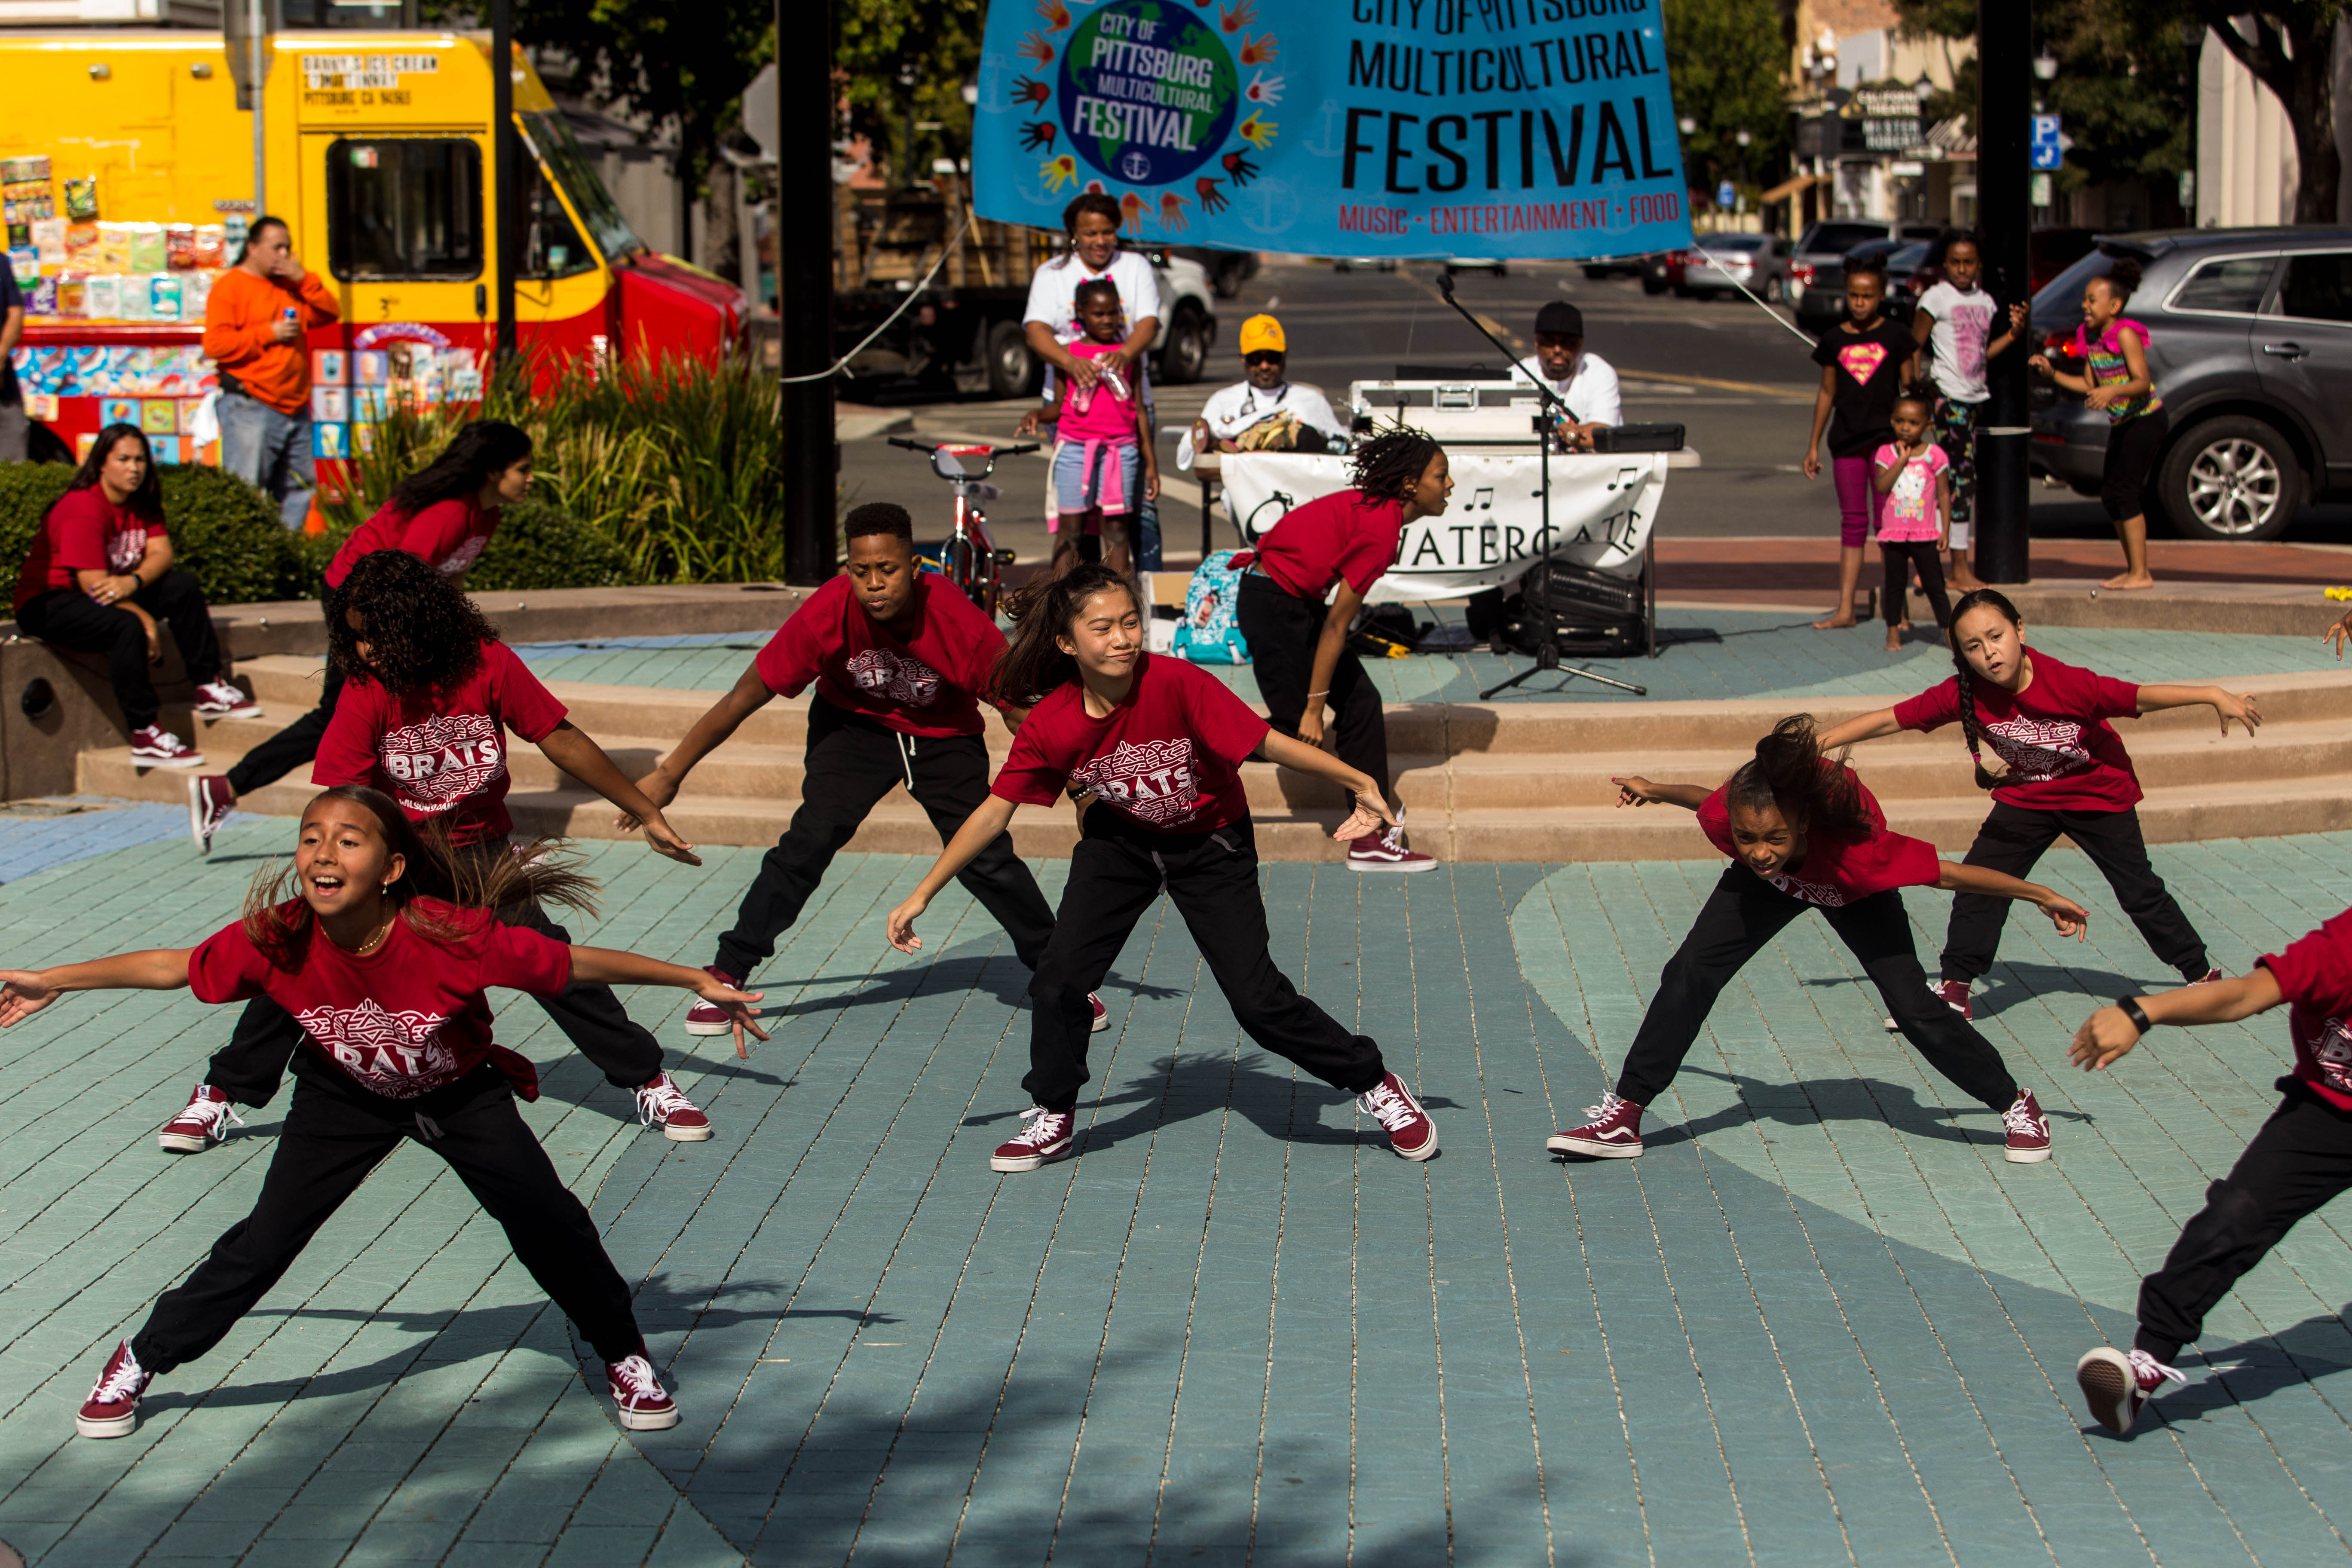 CITY_PITTSBURG_MULTICULTURAL_OCTOBER_2016 (461)